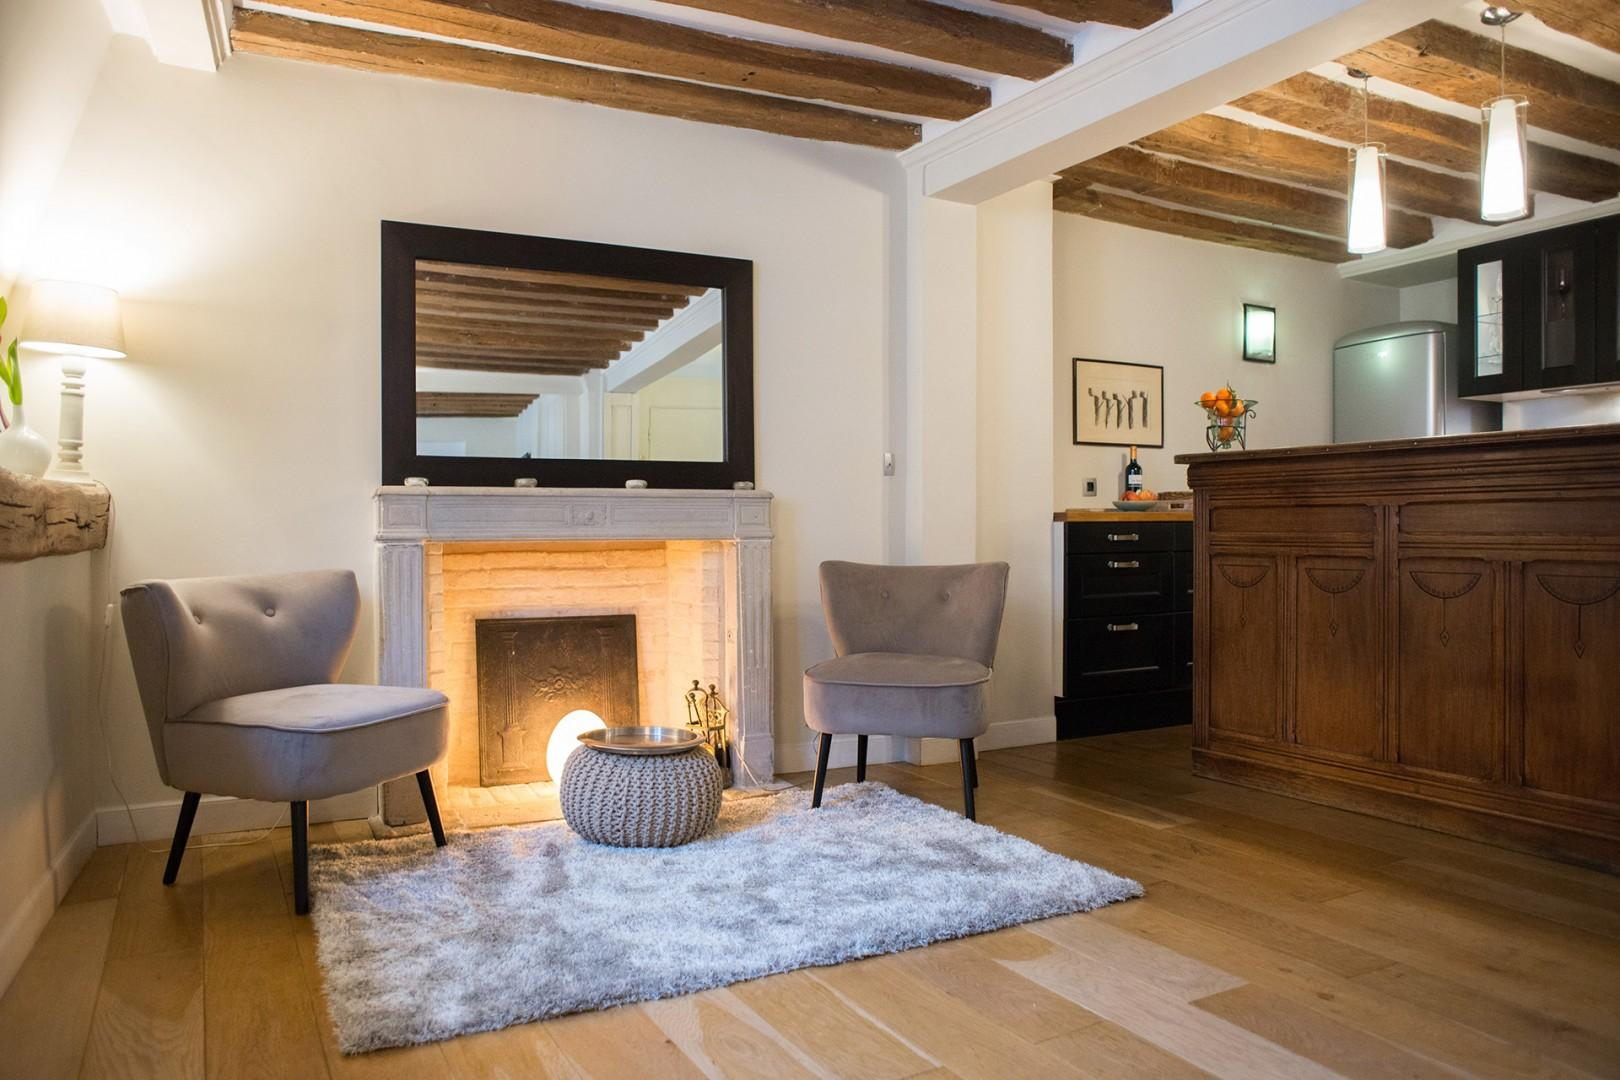 Welcome to the cozy living room with a beautiful exposed beam ceiling!